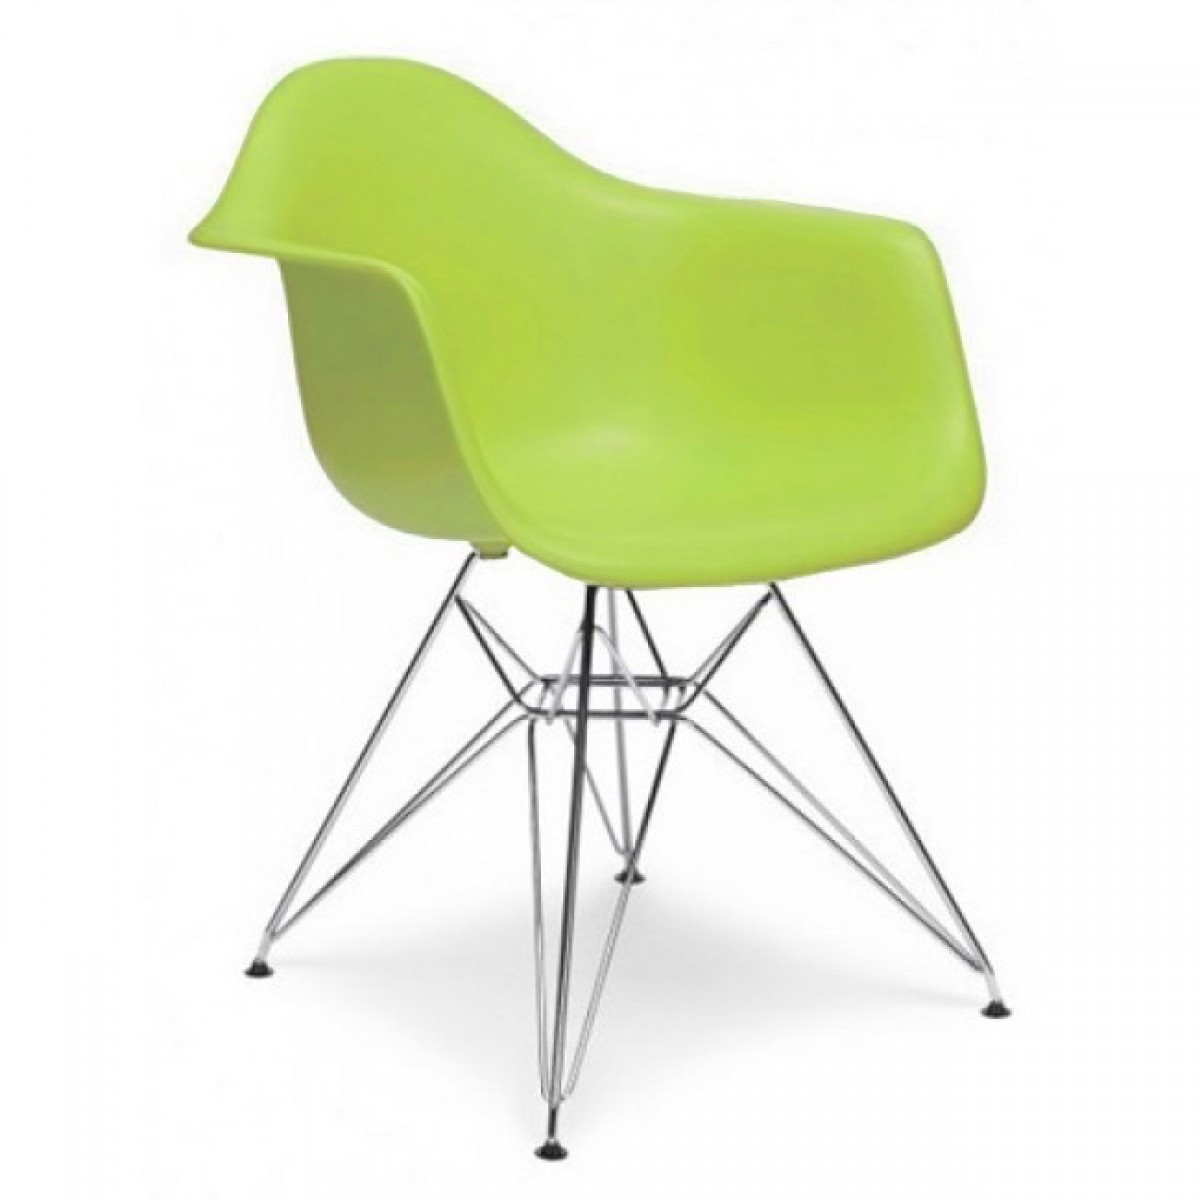 Eames Style DAR Molded Lime Green Plastic Dining Armchair  : eamesdargreen 13 from www.emoderndecor.com size 1200 x 1200 jpeg 87kB